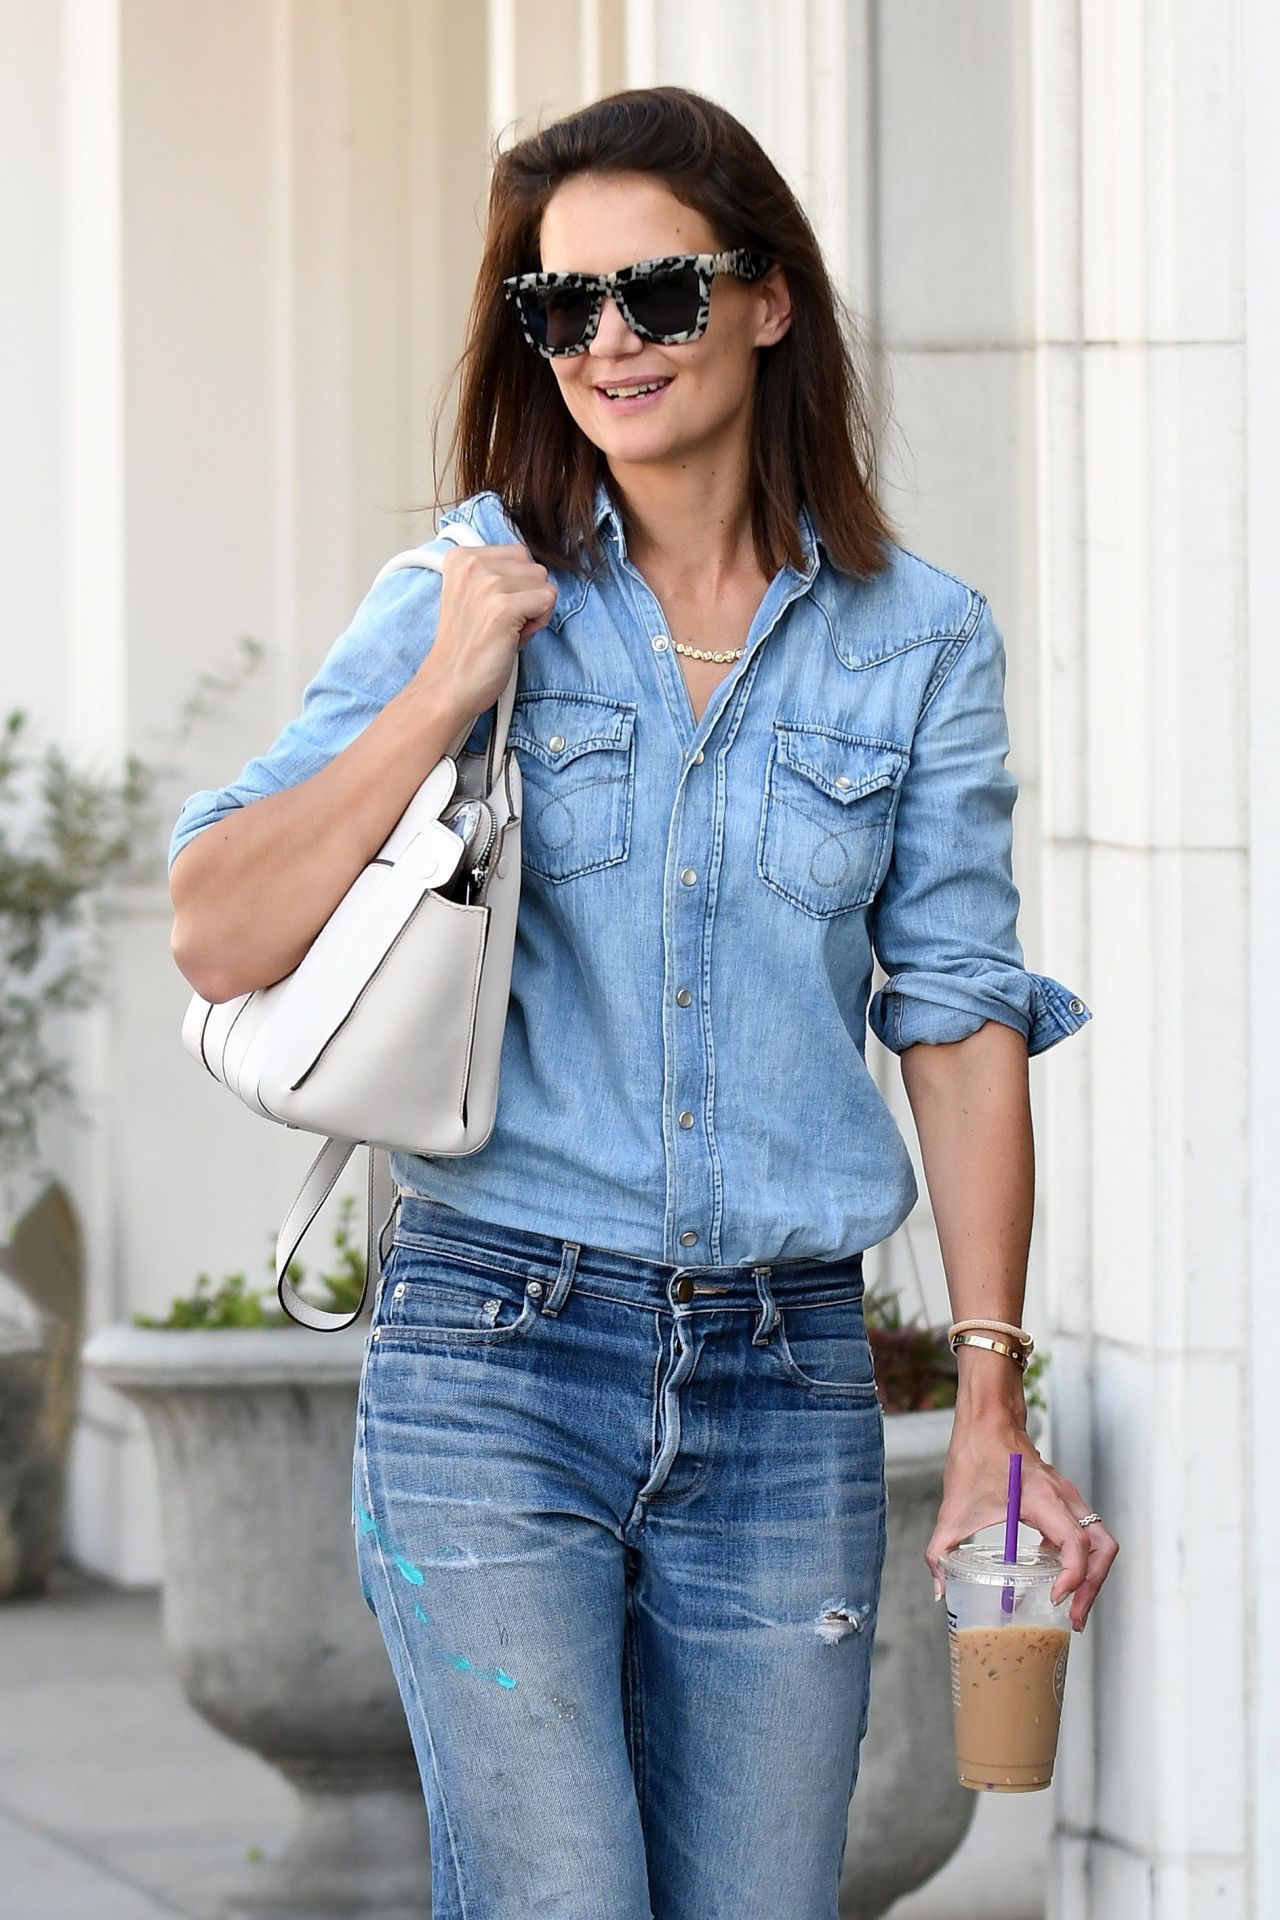 Katie Holmes - Shopping in Beverly Hills 08/03/2017 Katie Holmes